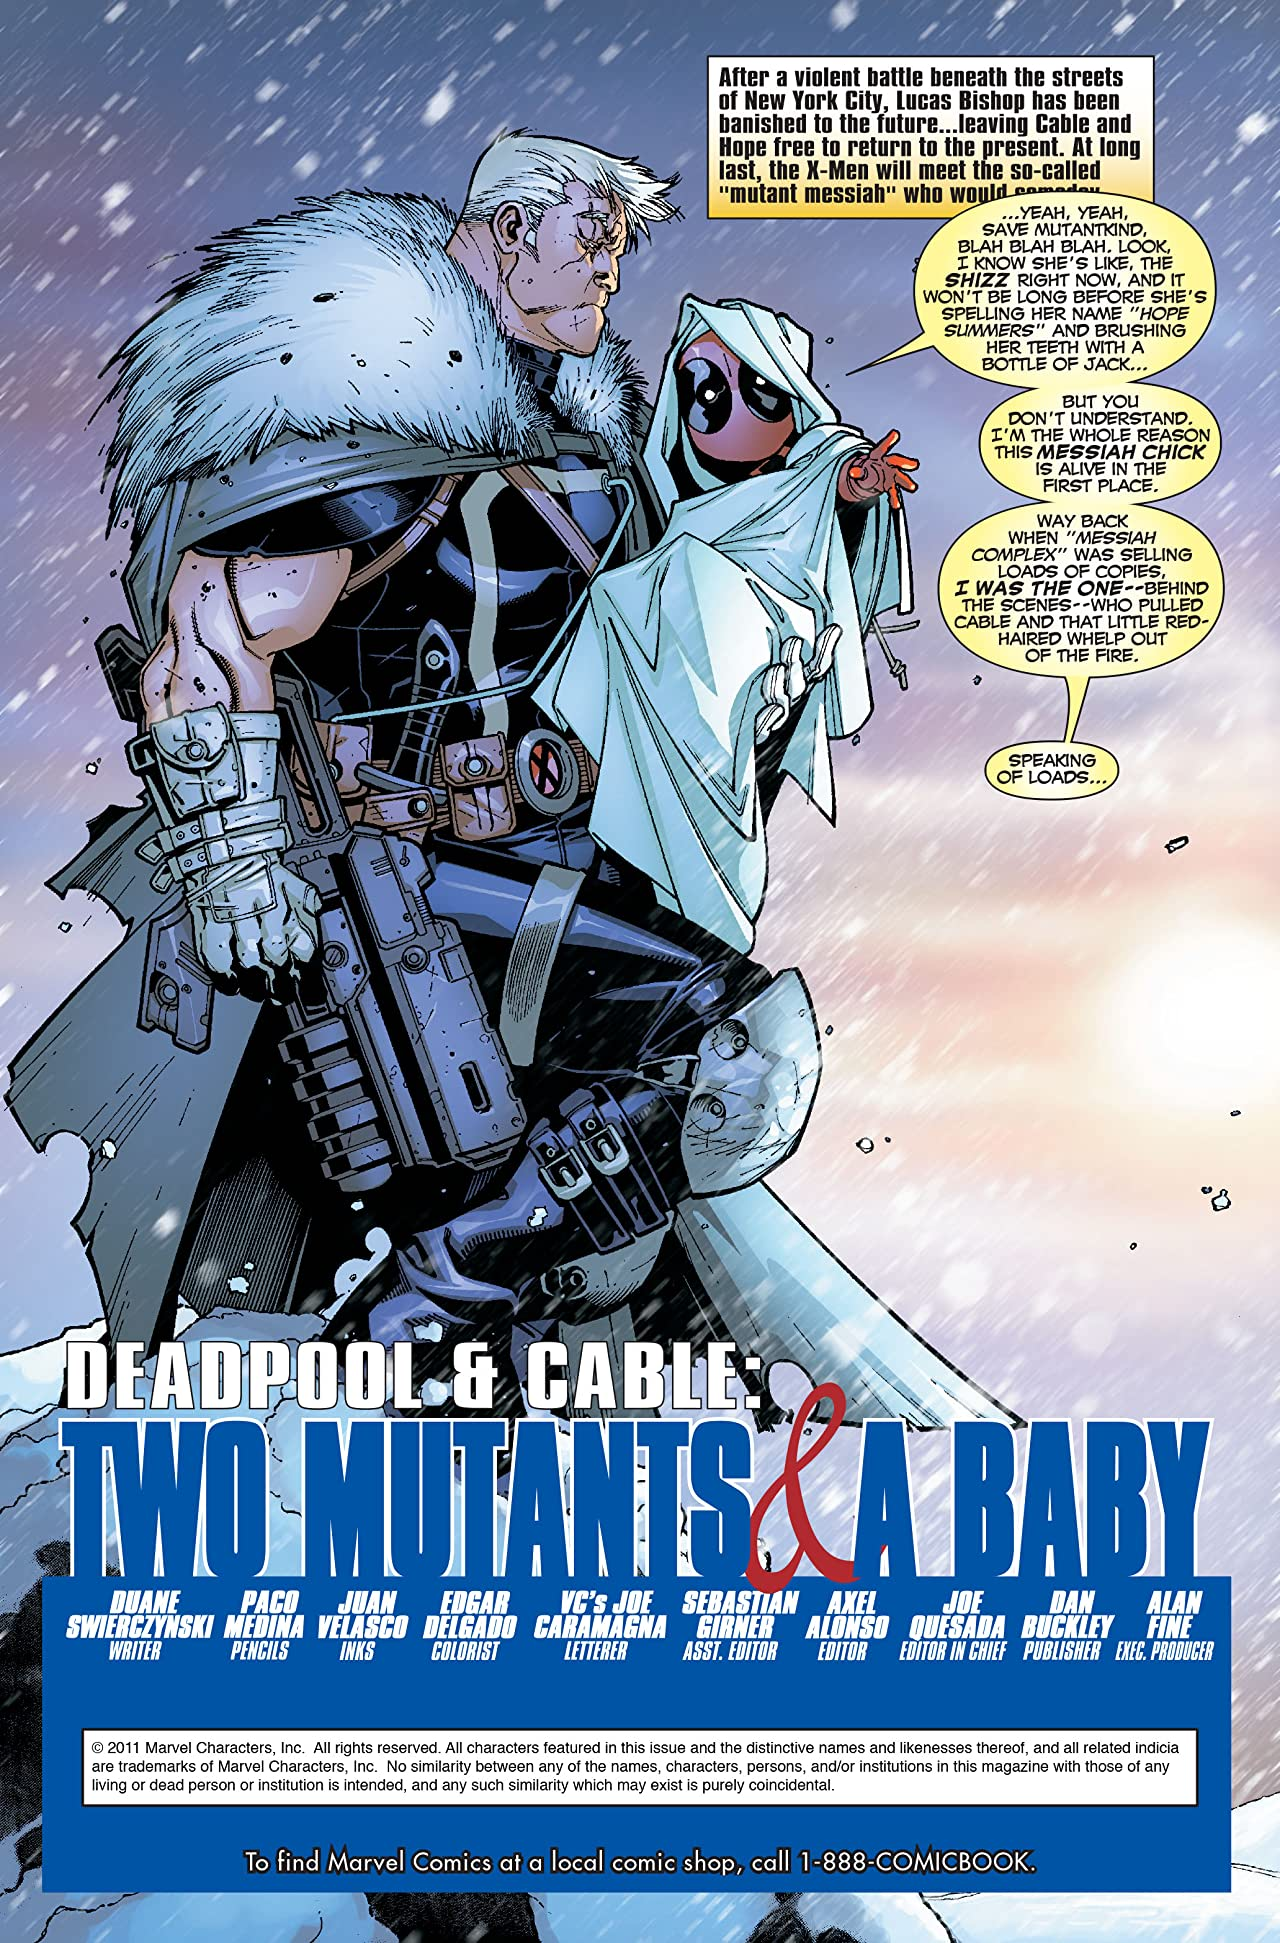 Deadpool and Cable #25